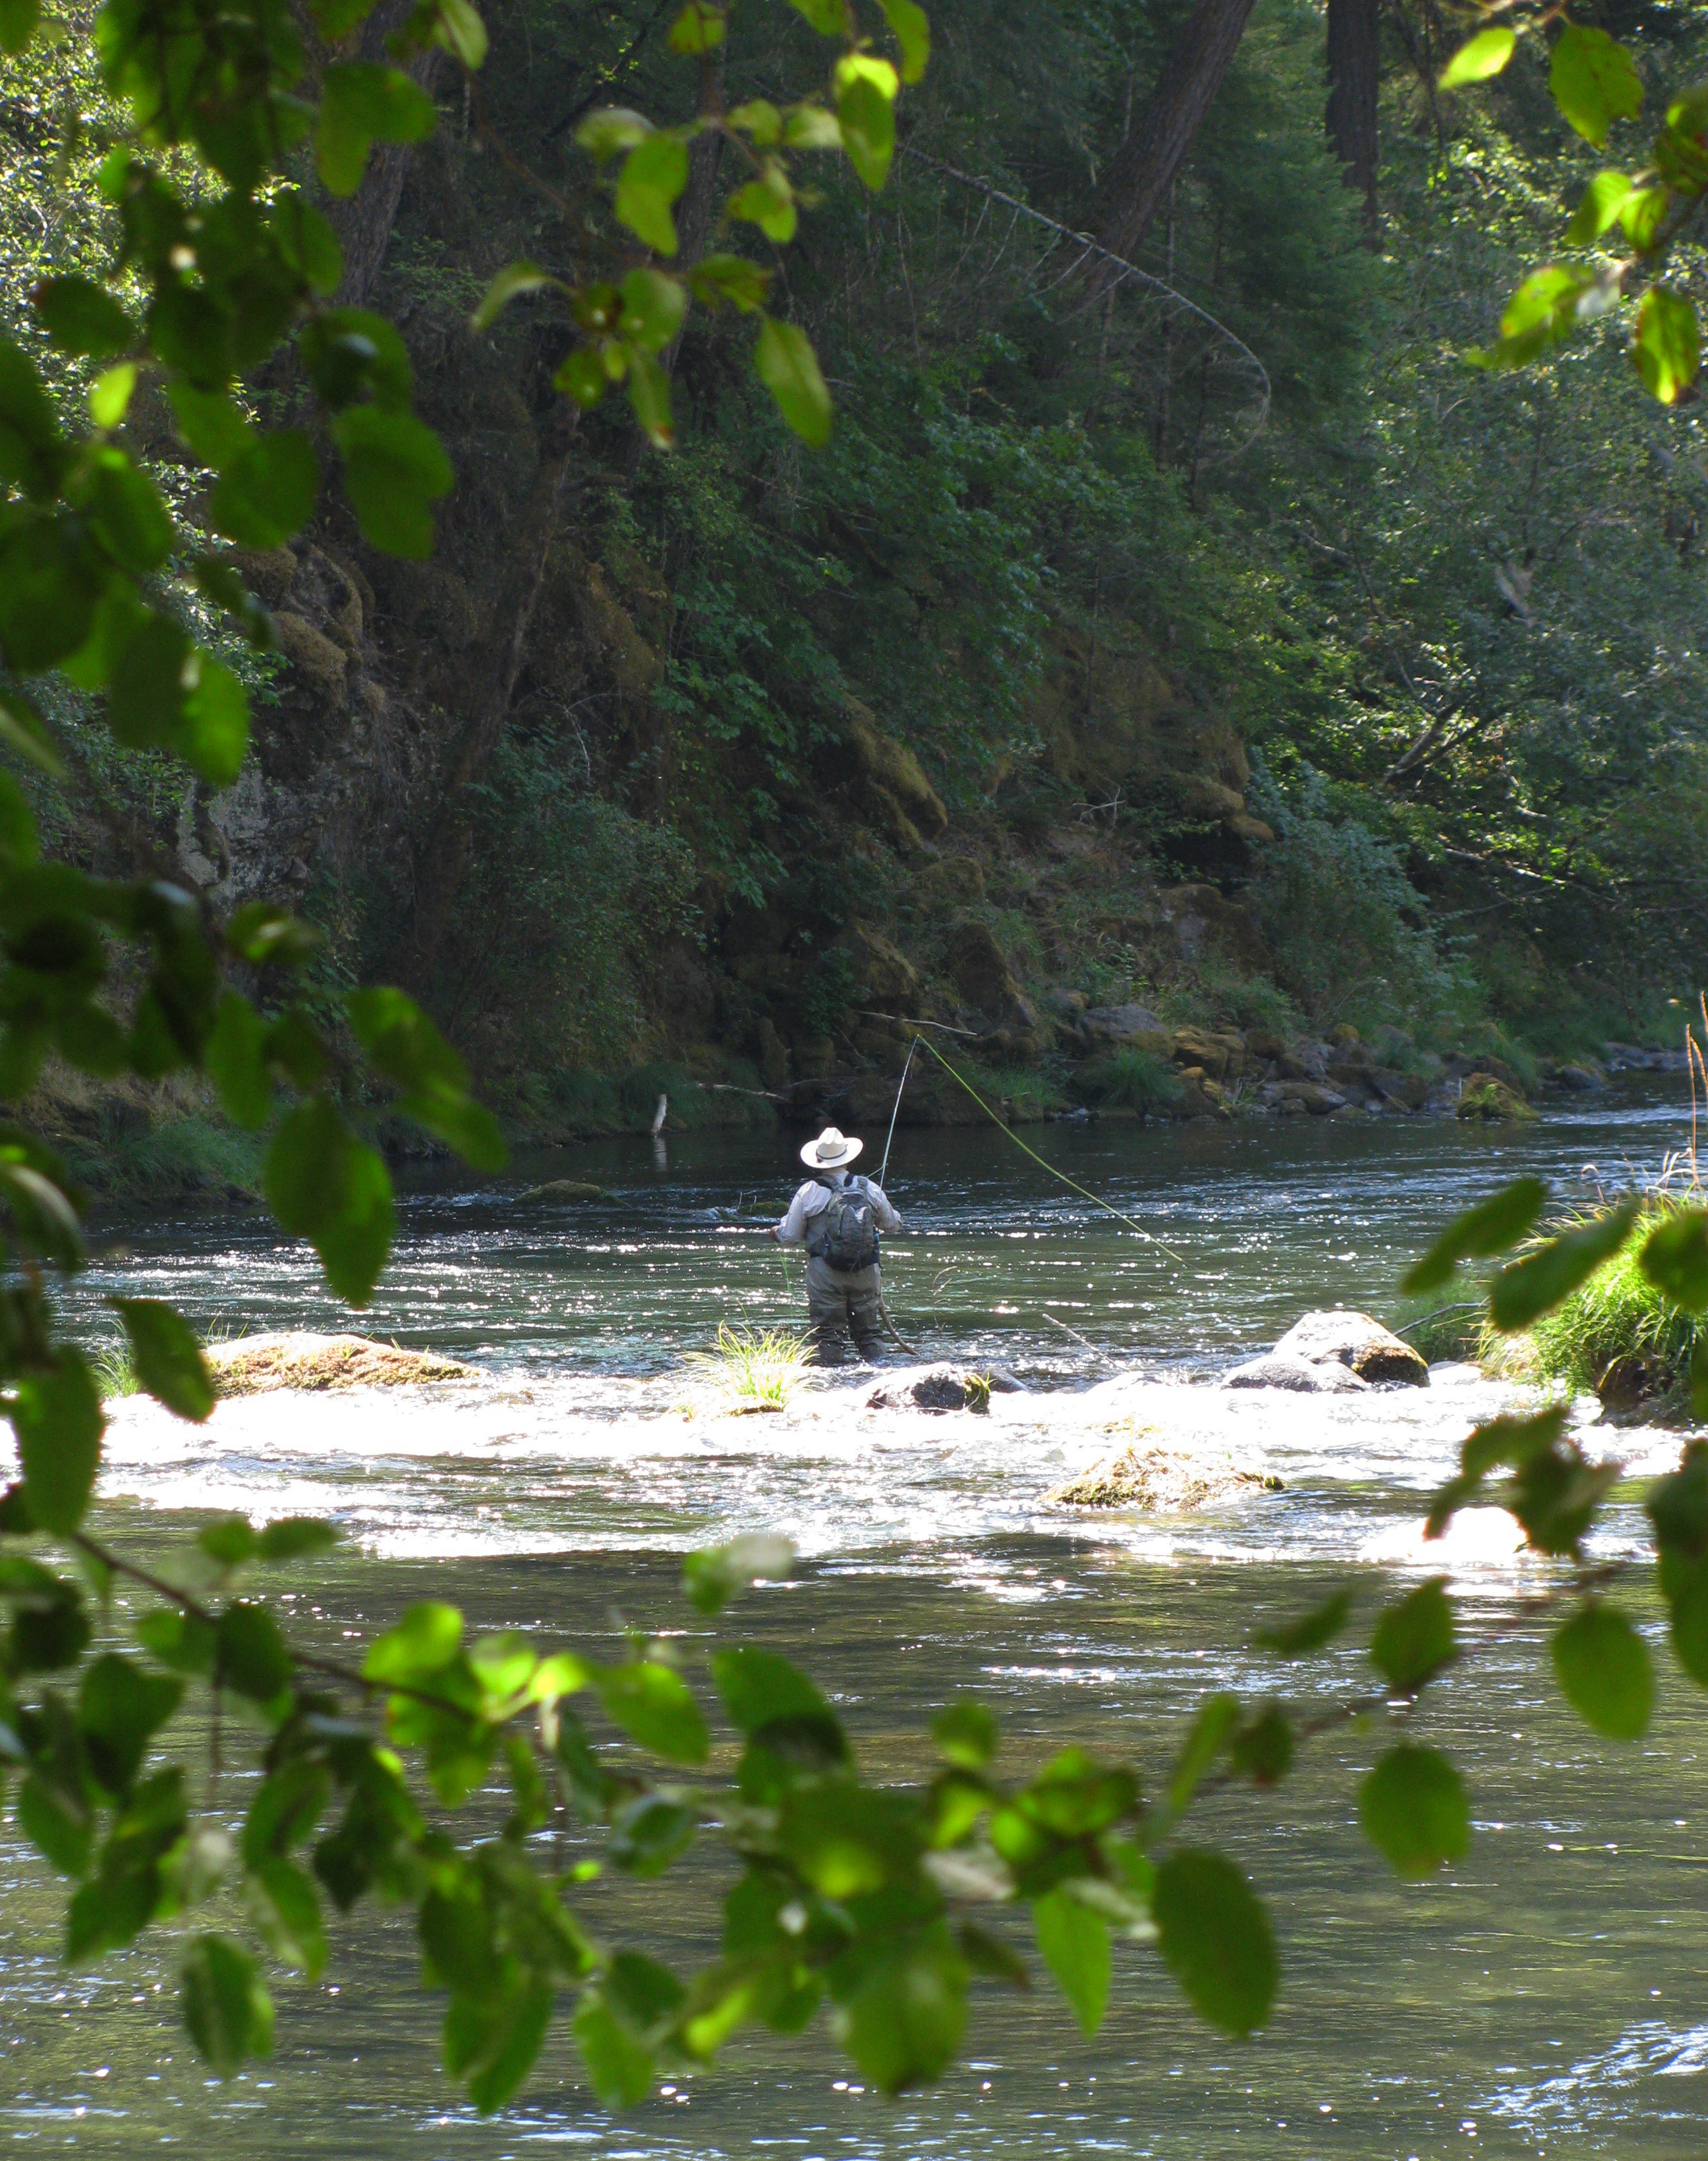 A lone fisherman fly-fishes the North Umpqua Wild and Scenic River.